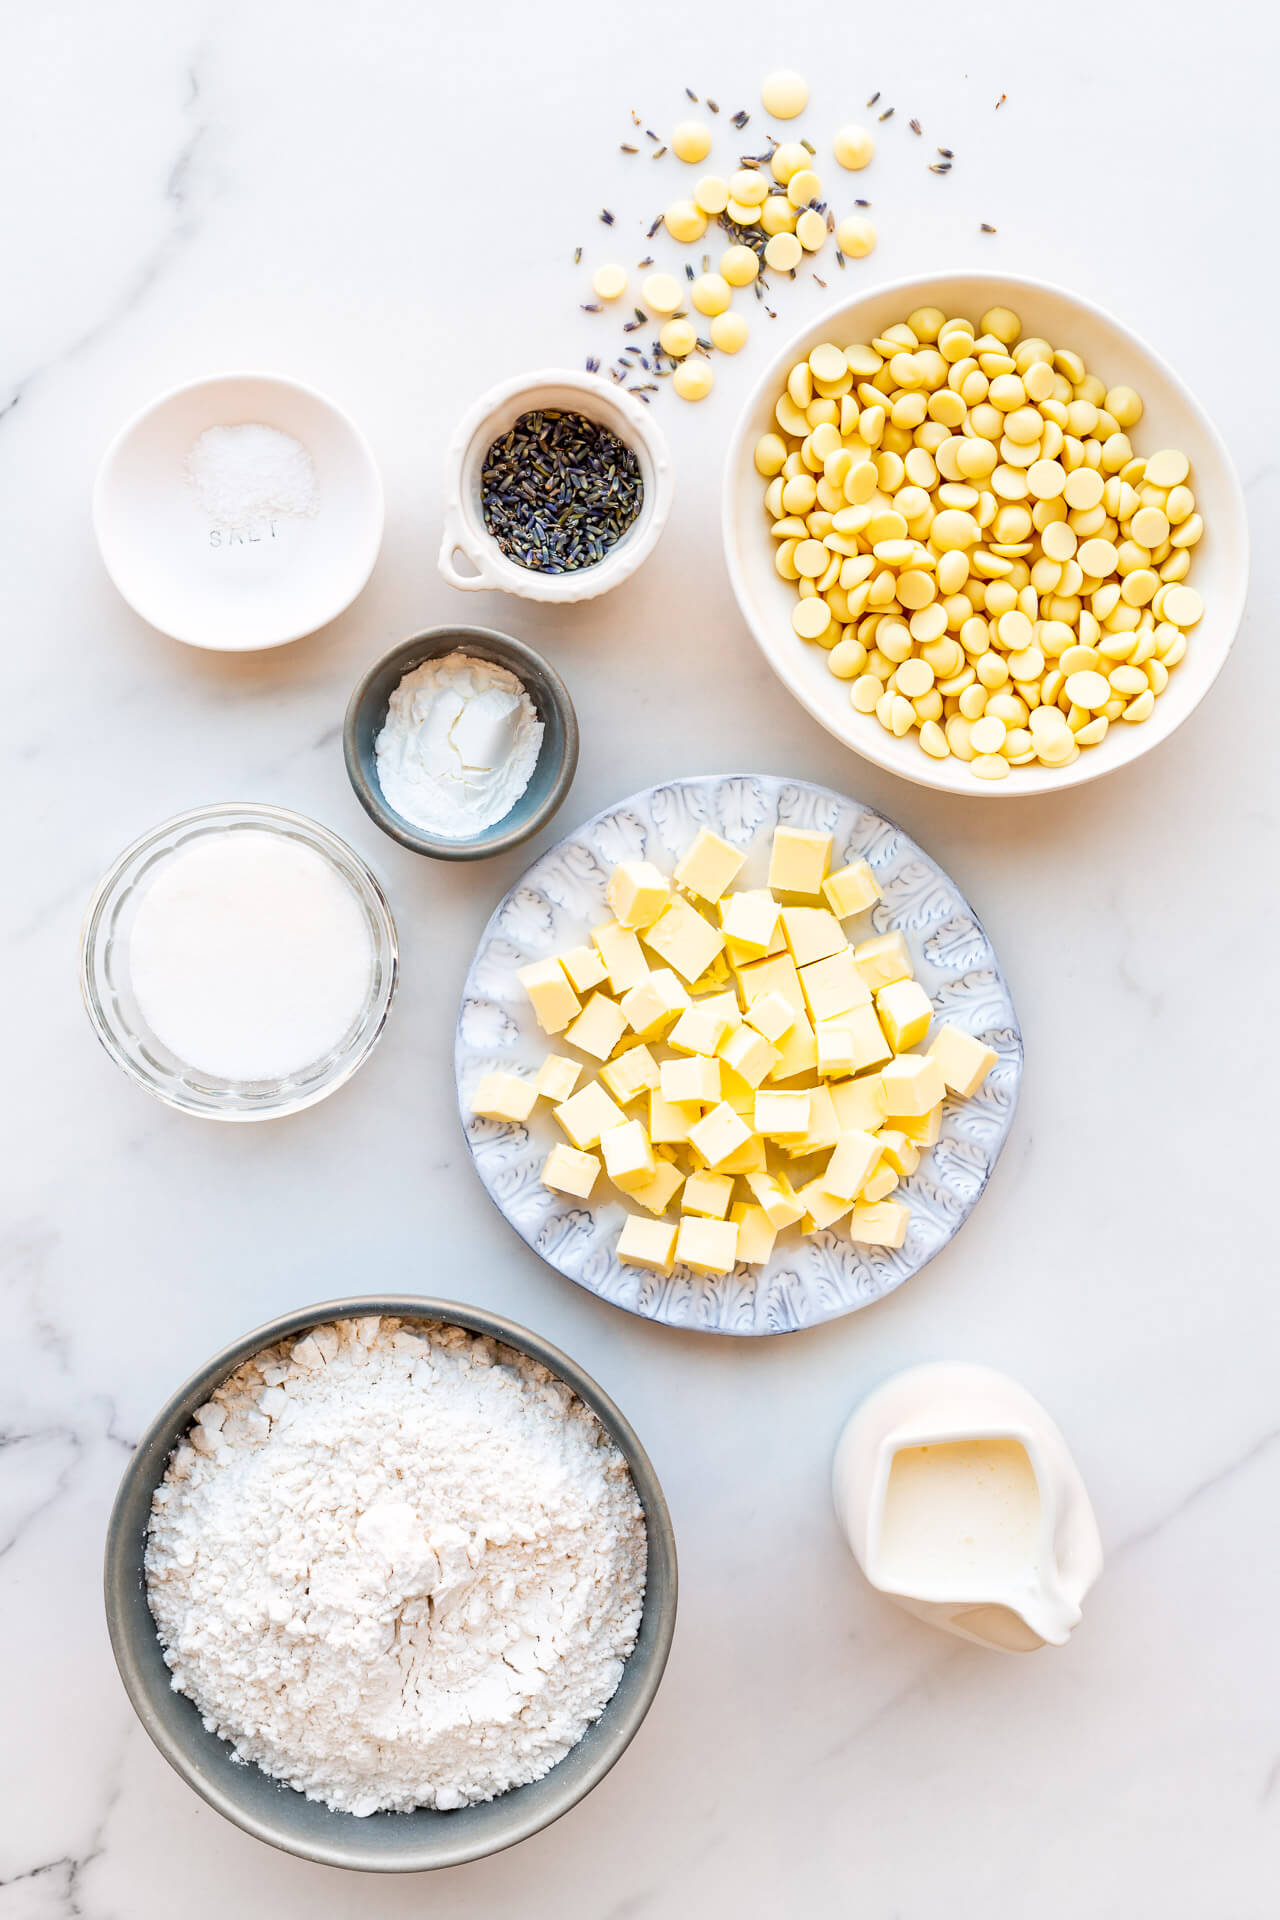 Ingredients for white chocolate lavender scones